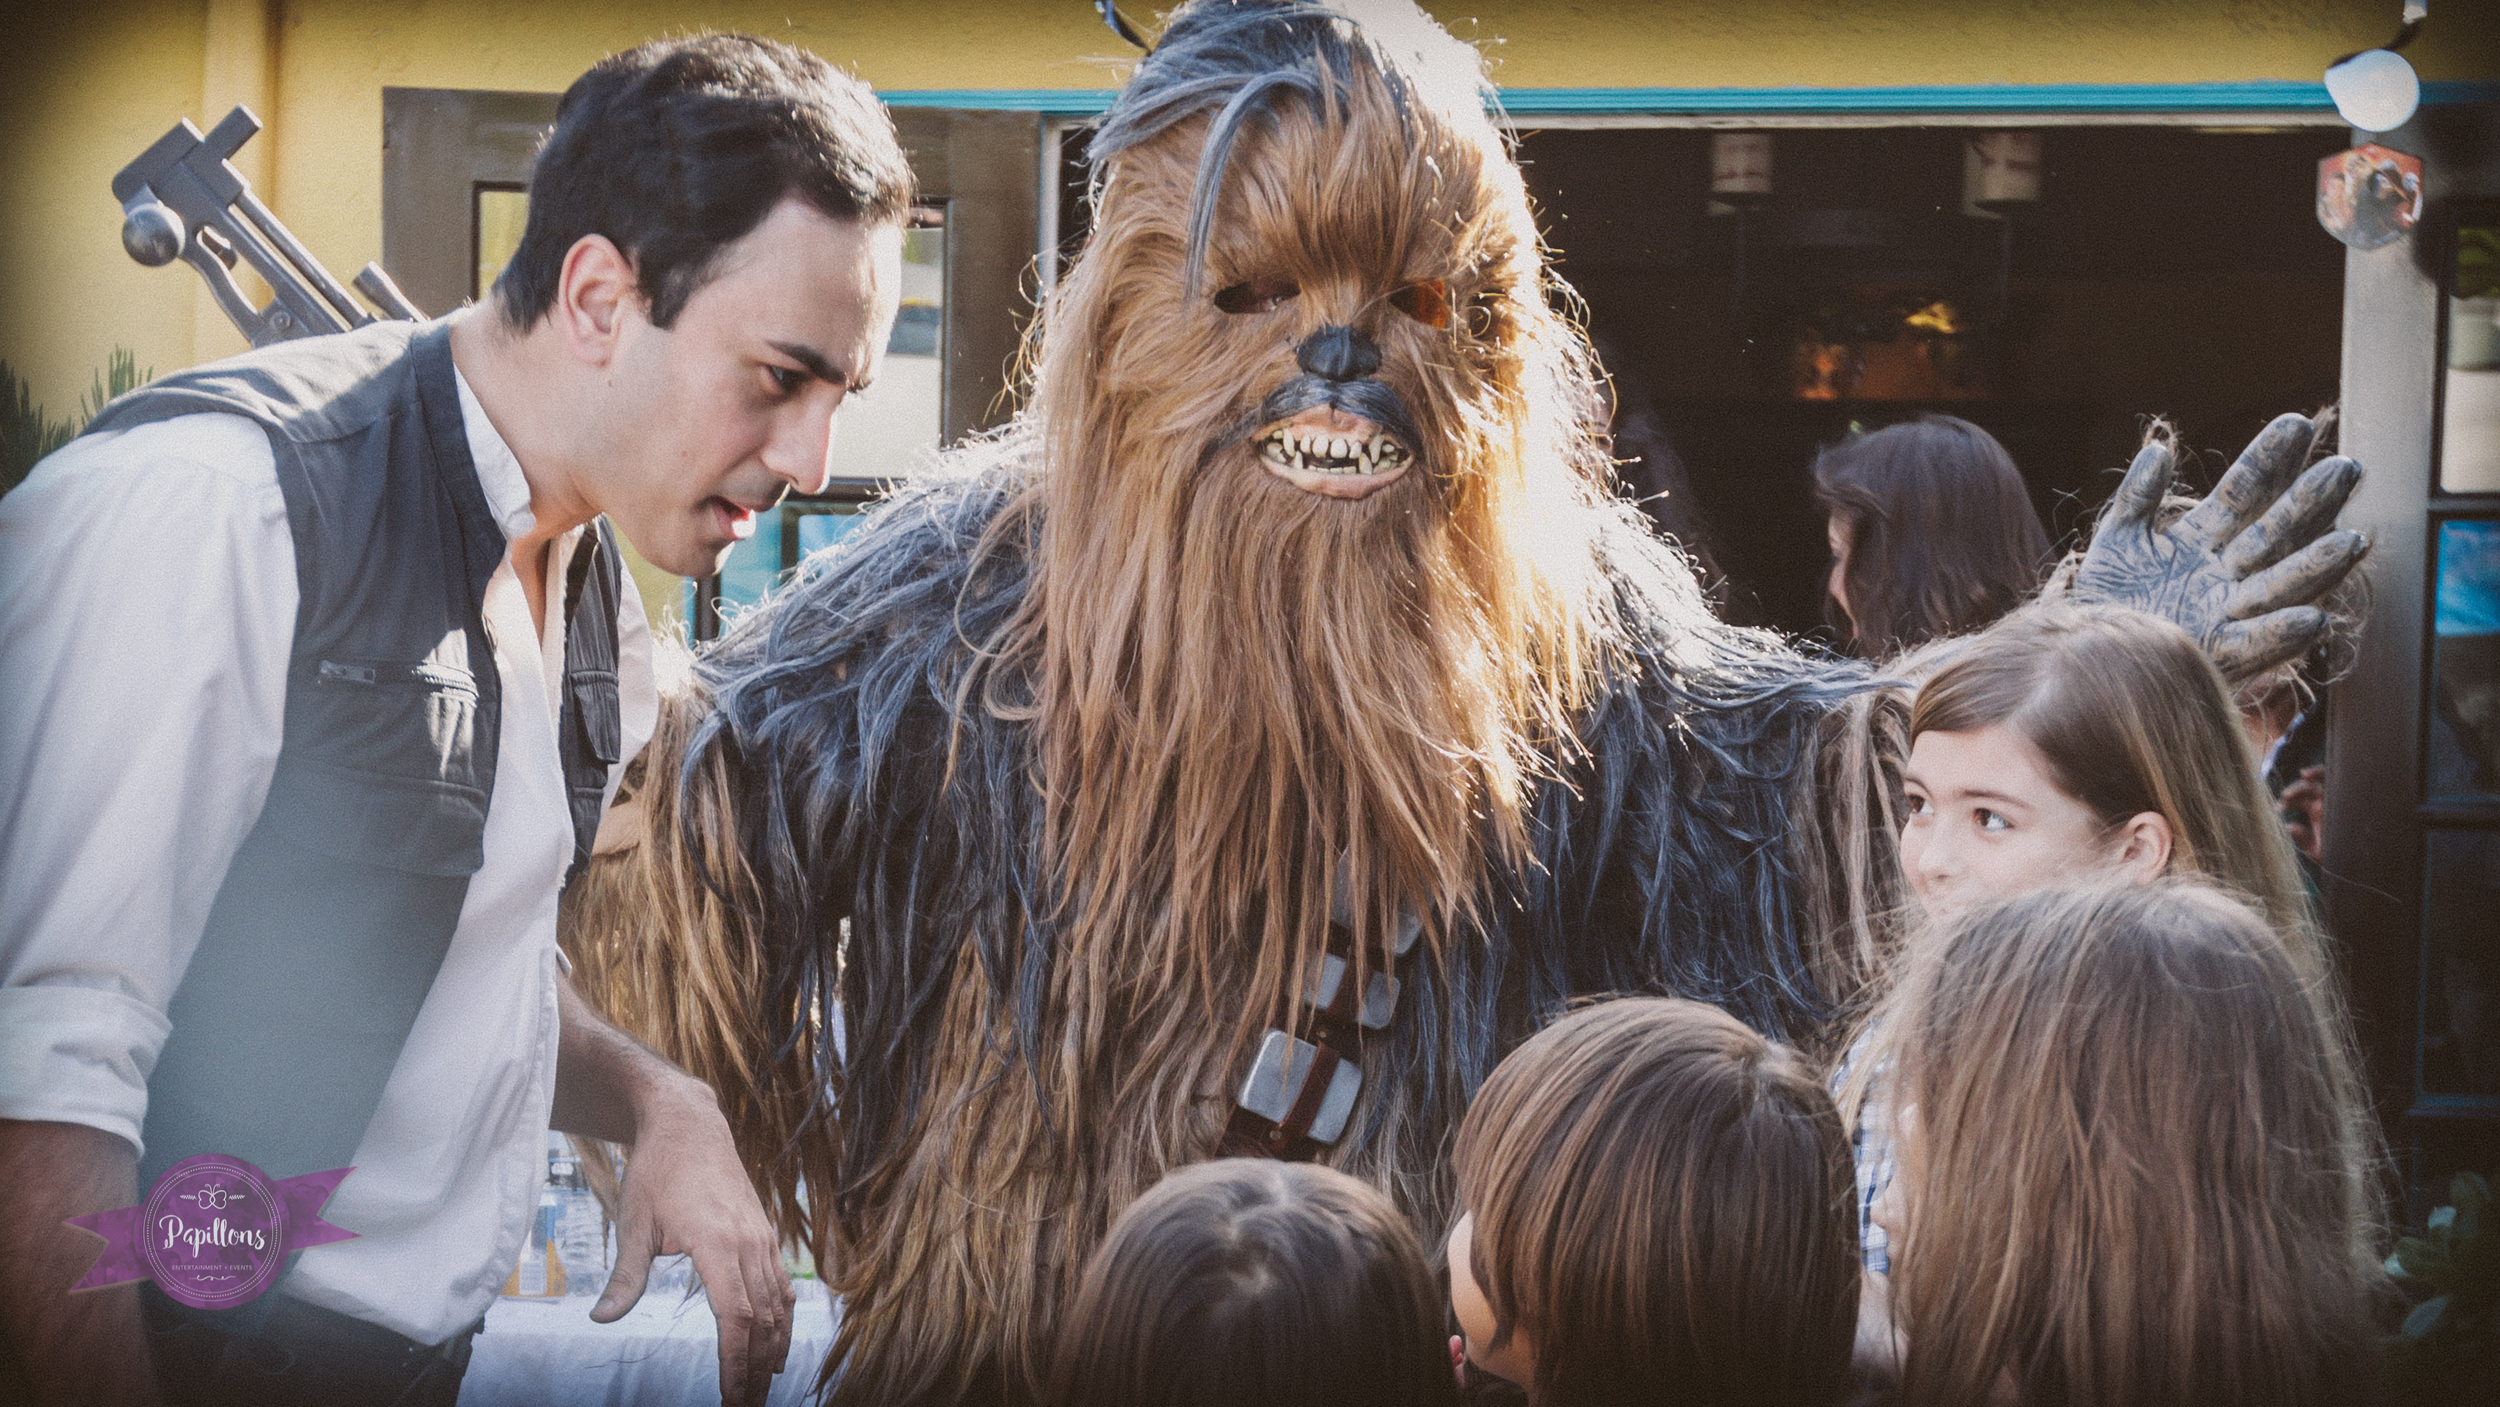 star wars party chewbacca character los angeles